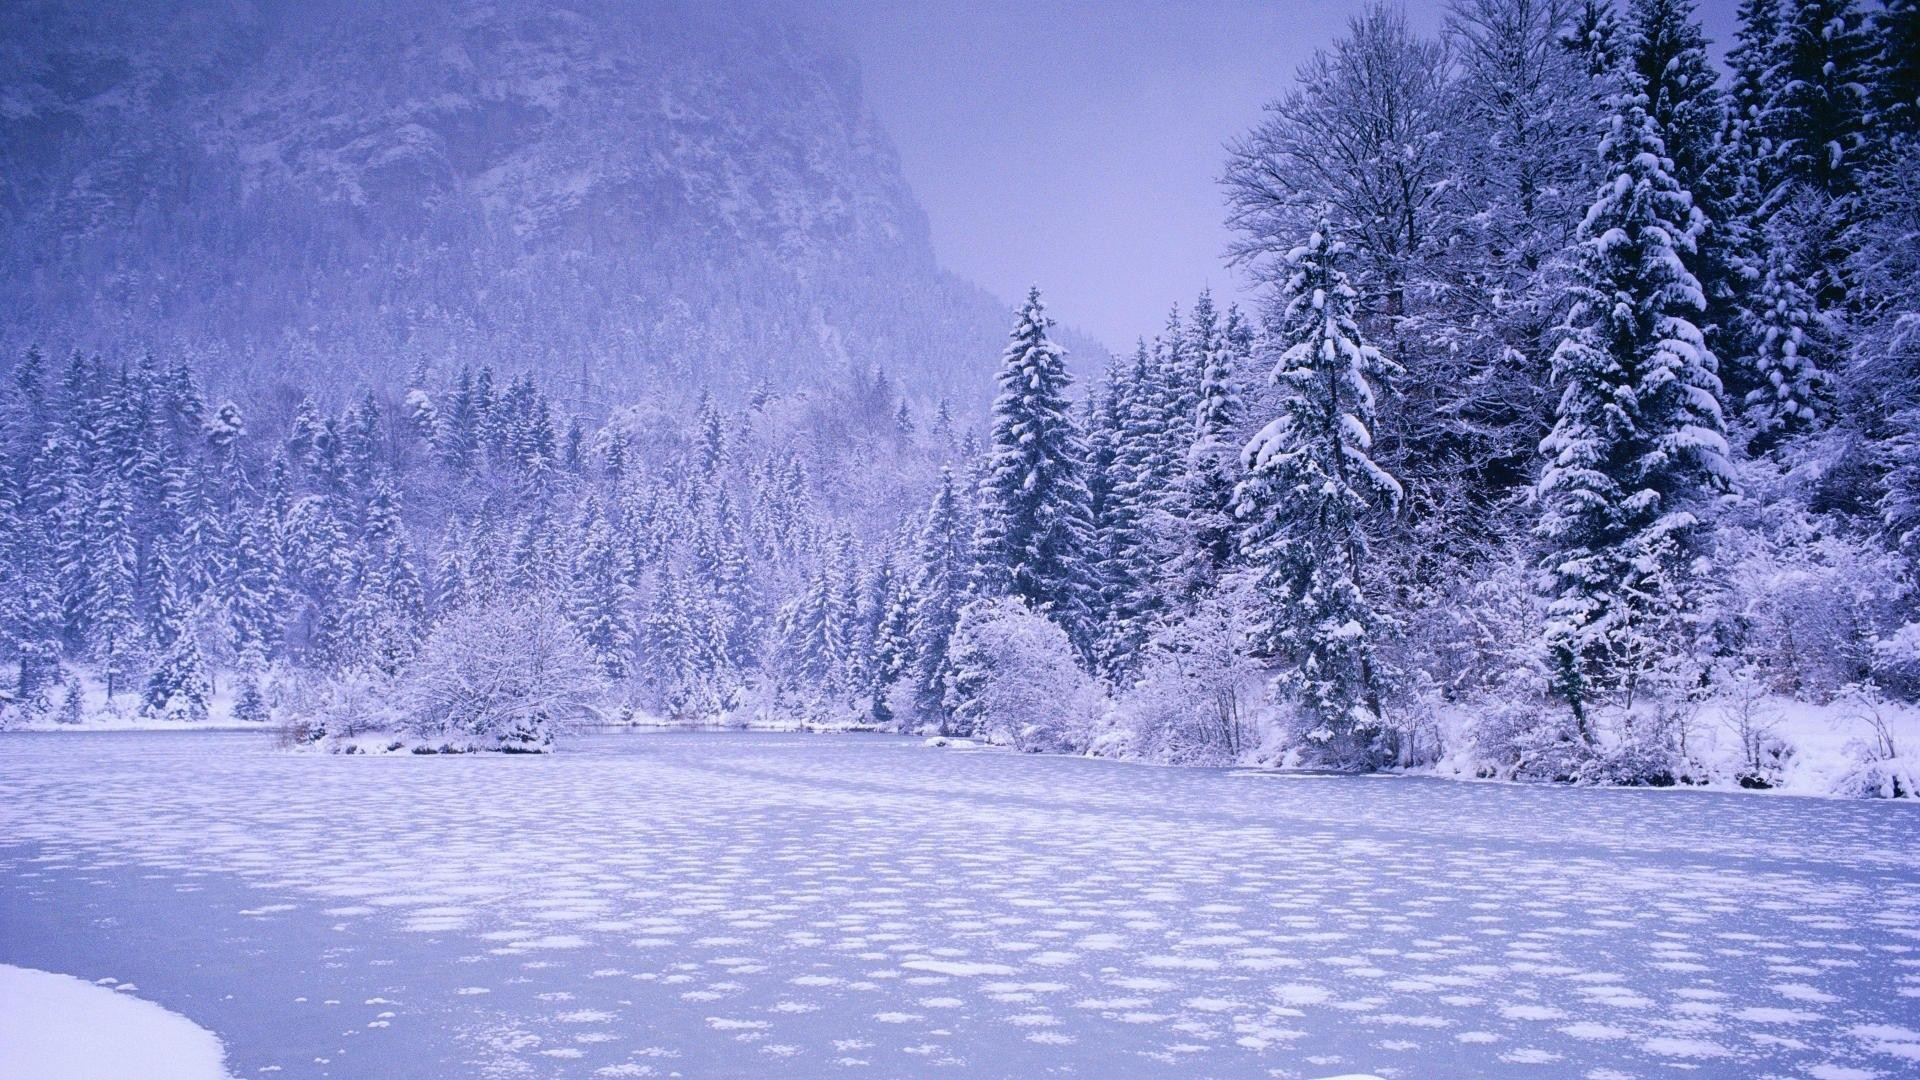 Res: 1920x1080, winter nature backgrounds. winter nature wallpapers hd resolution iphone  for desktop  backgrounds